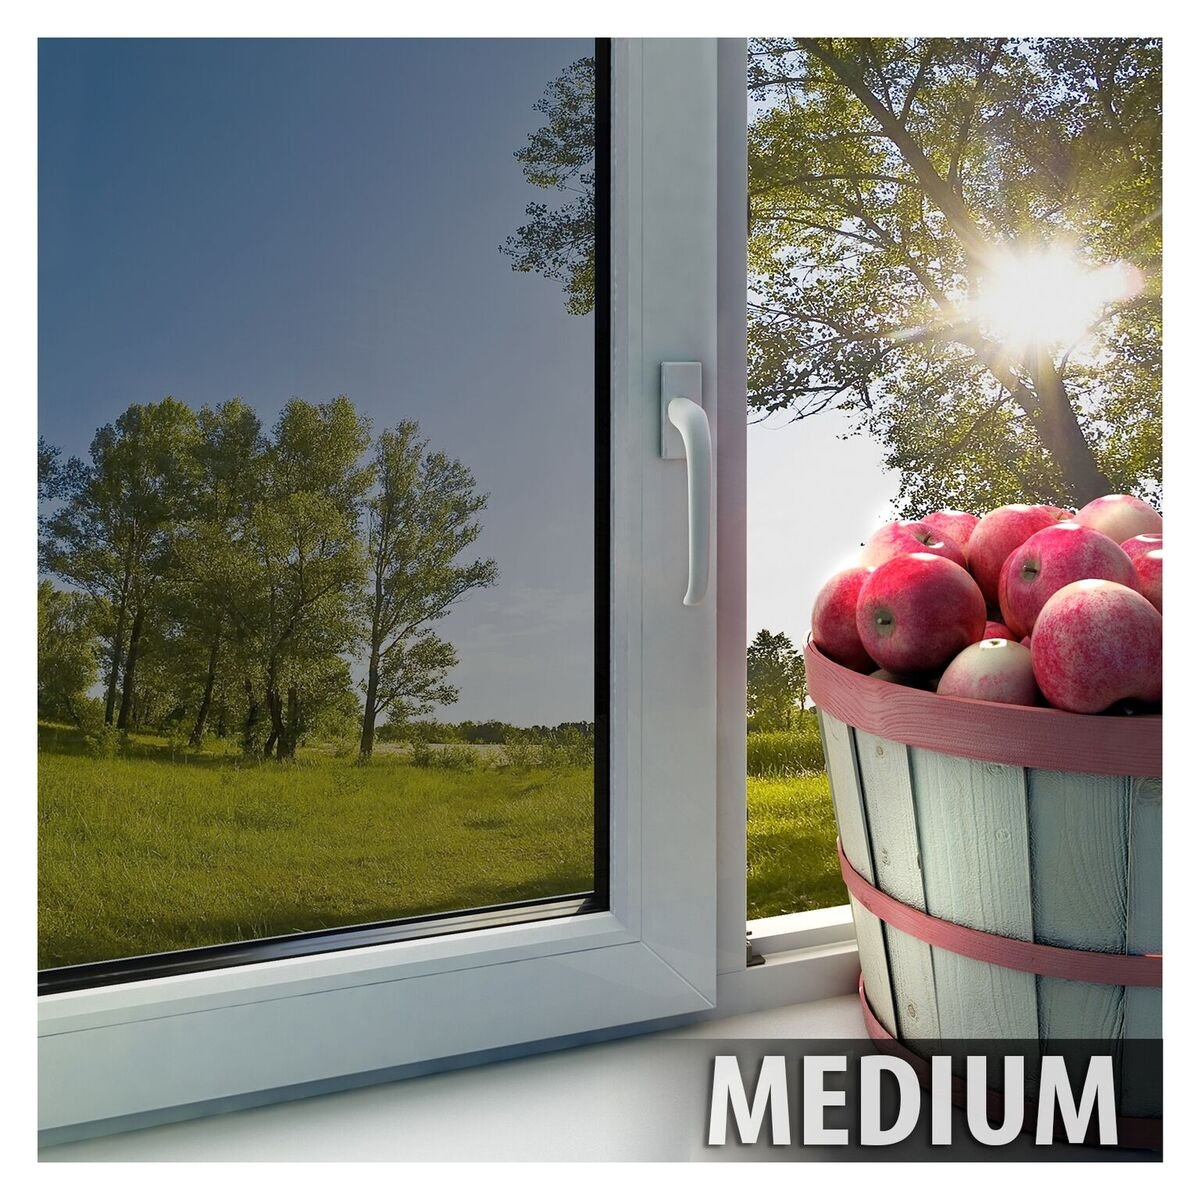 BDF EXS35 EXTERIOR Window Film High Heat Rejection Silver 35 (Medium) - 36in X 50ft by Buydecorativefilm (Image #4)